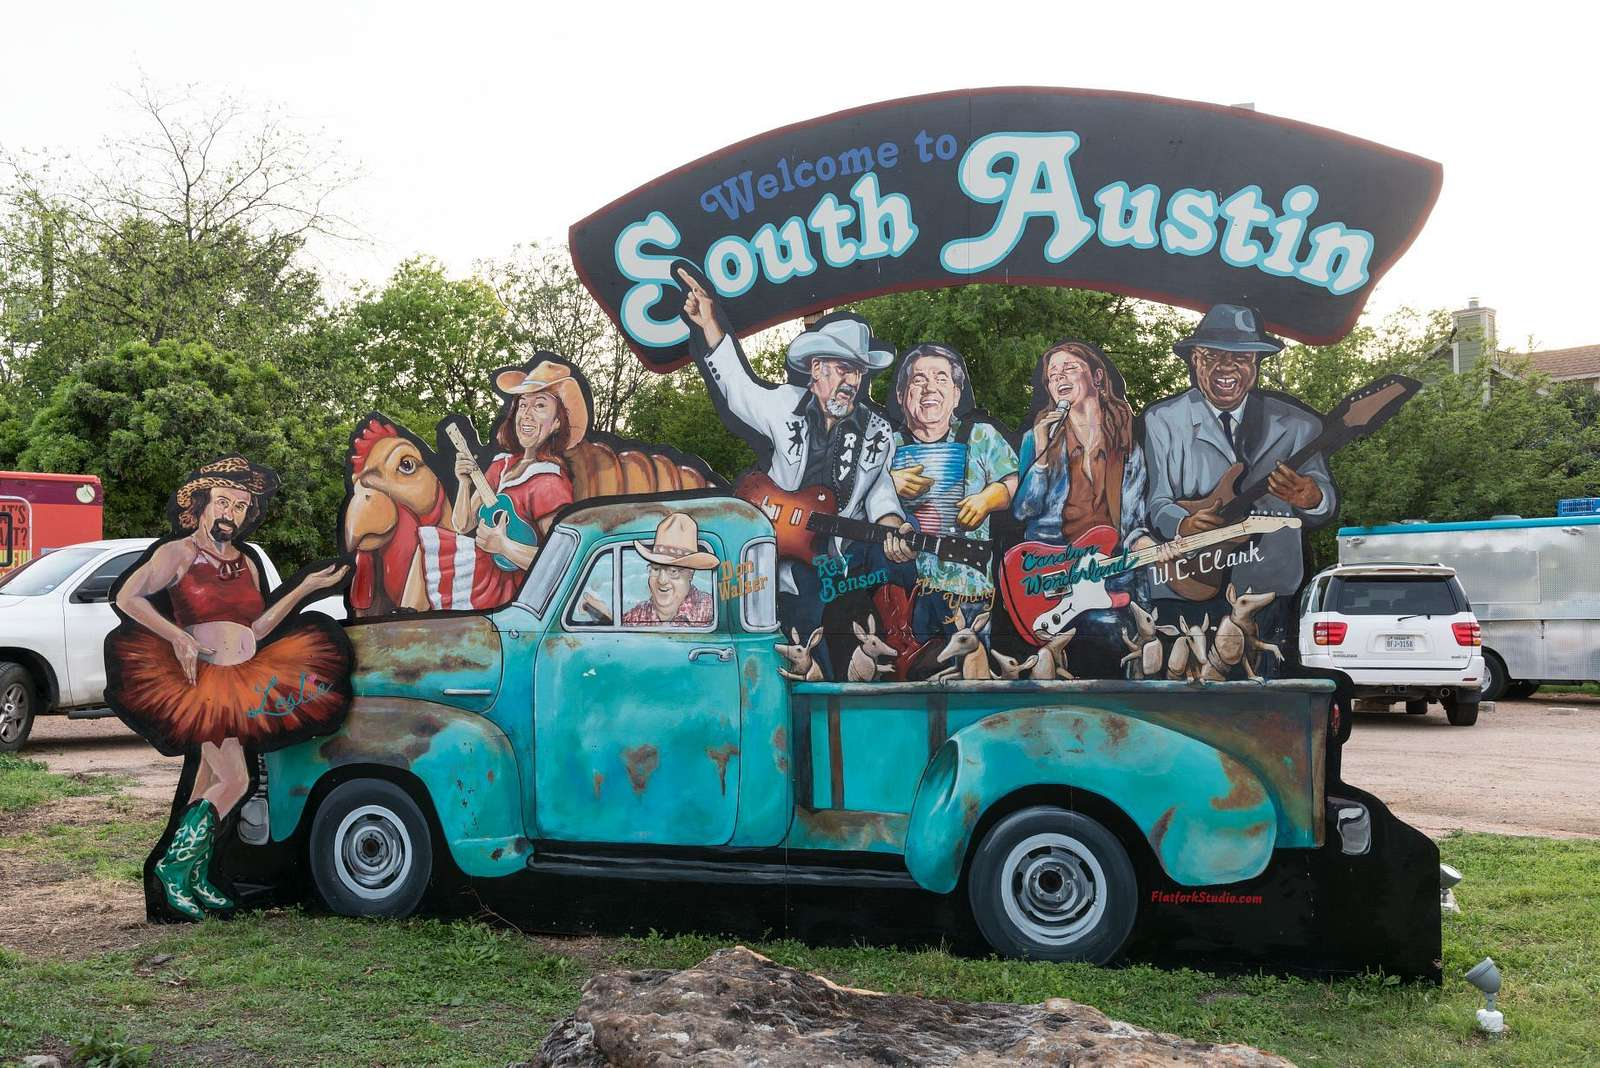 Some would call this eclectic, others funky, art in the vibrant South Austin neighborhood of Austin, Texas